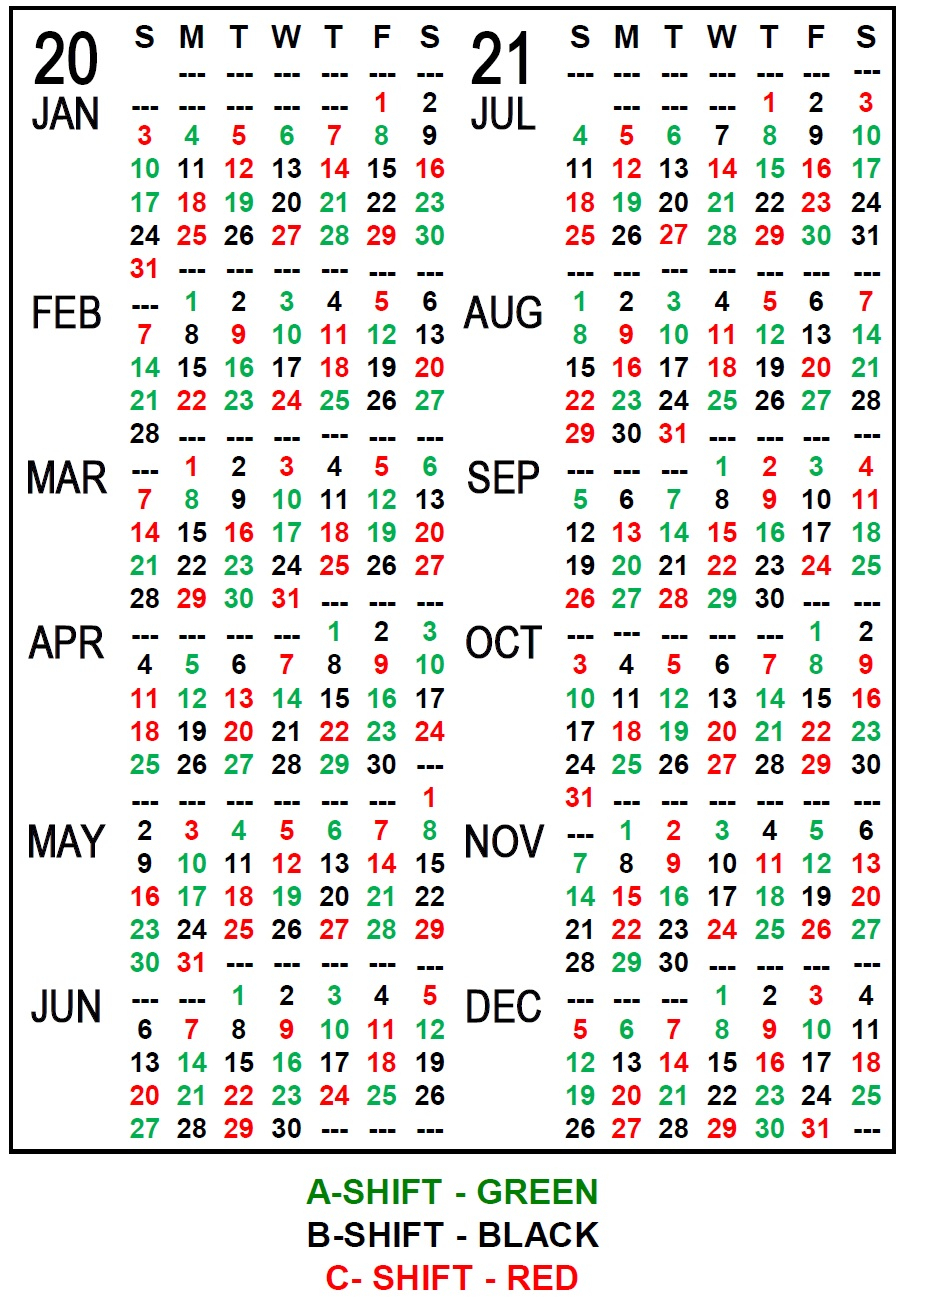 Firefighter Red Shift Calendar 2021 Printable Free